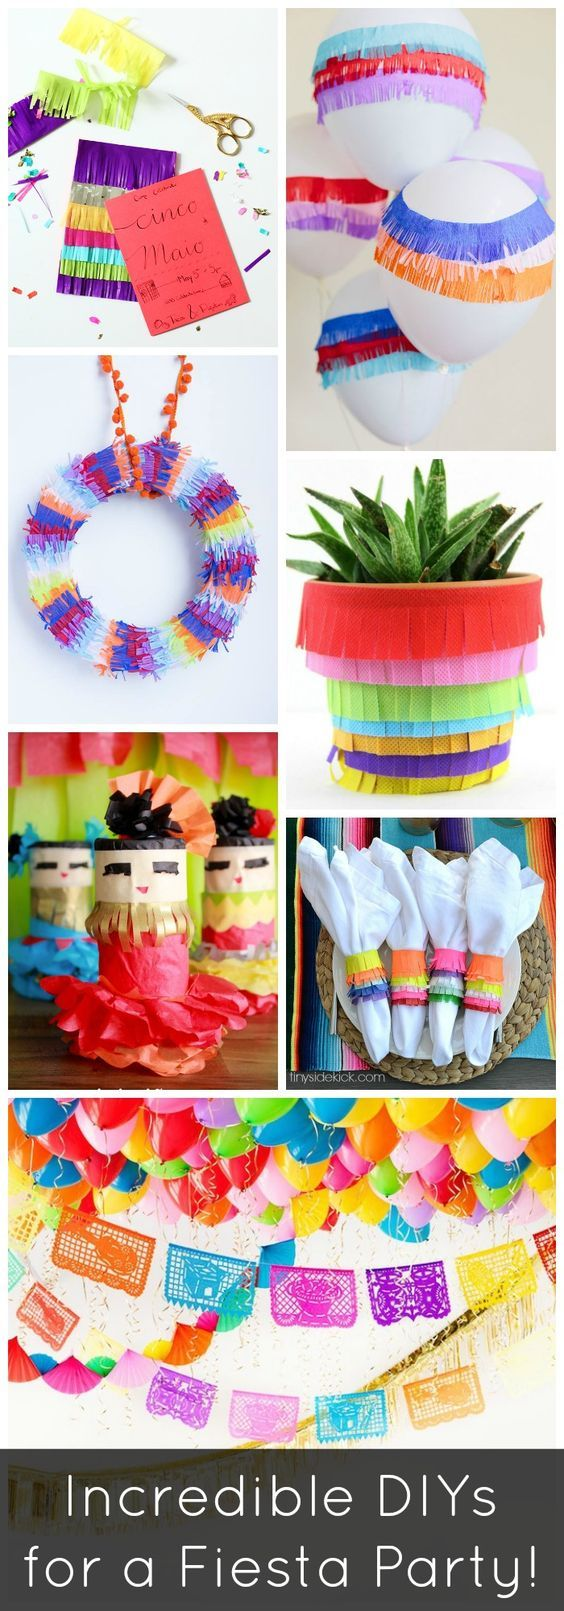 Everything you need to throw an amazing fiesta party! And these are all super simple too